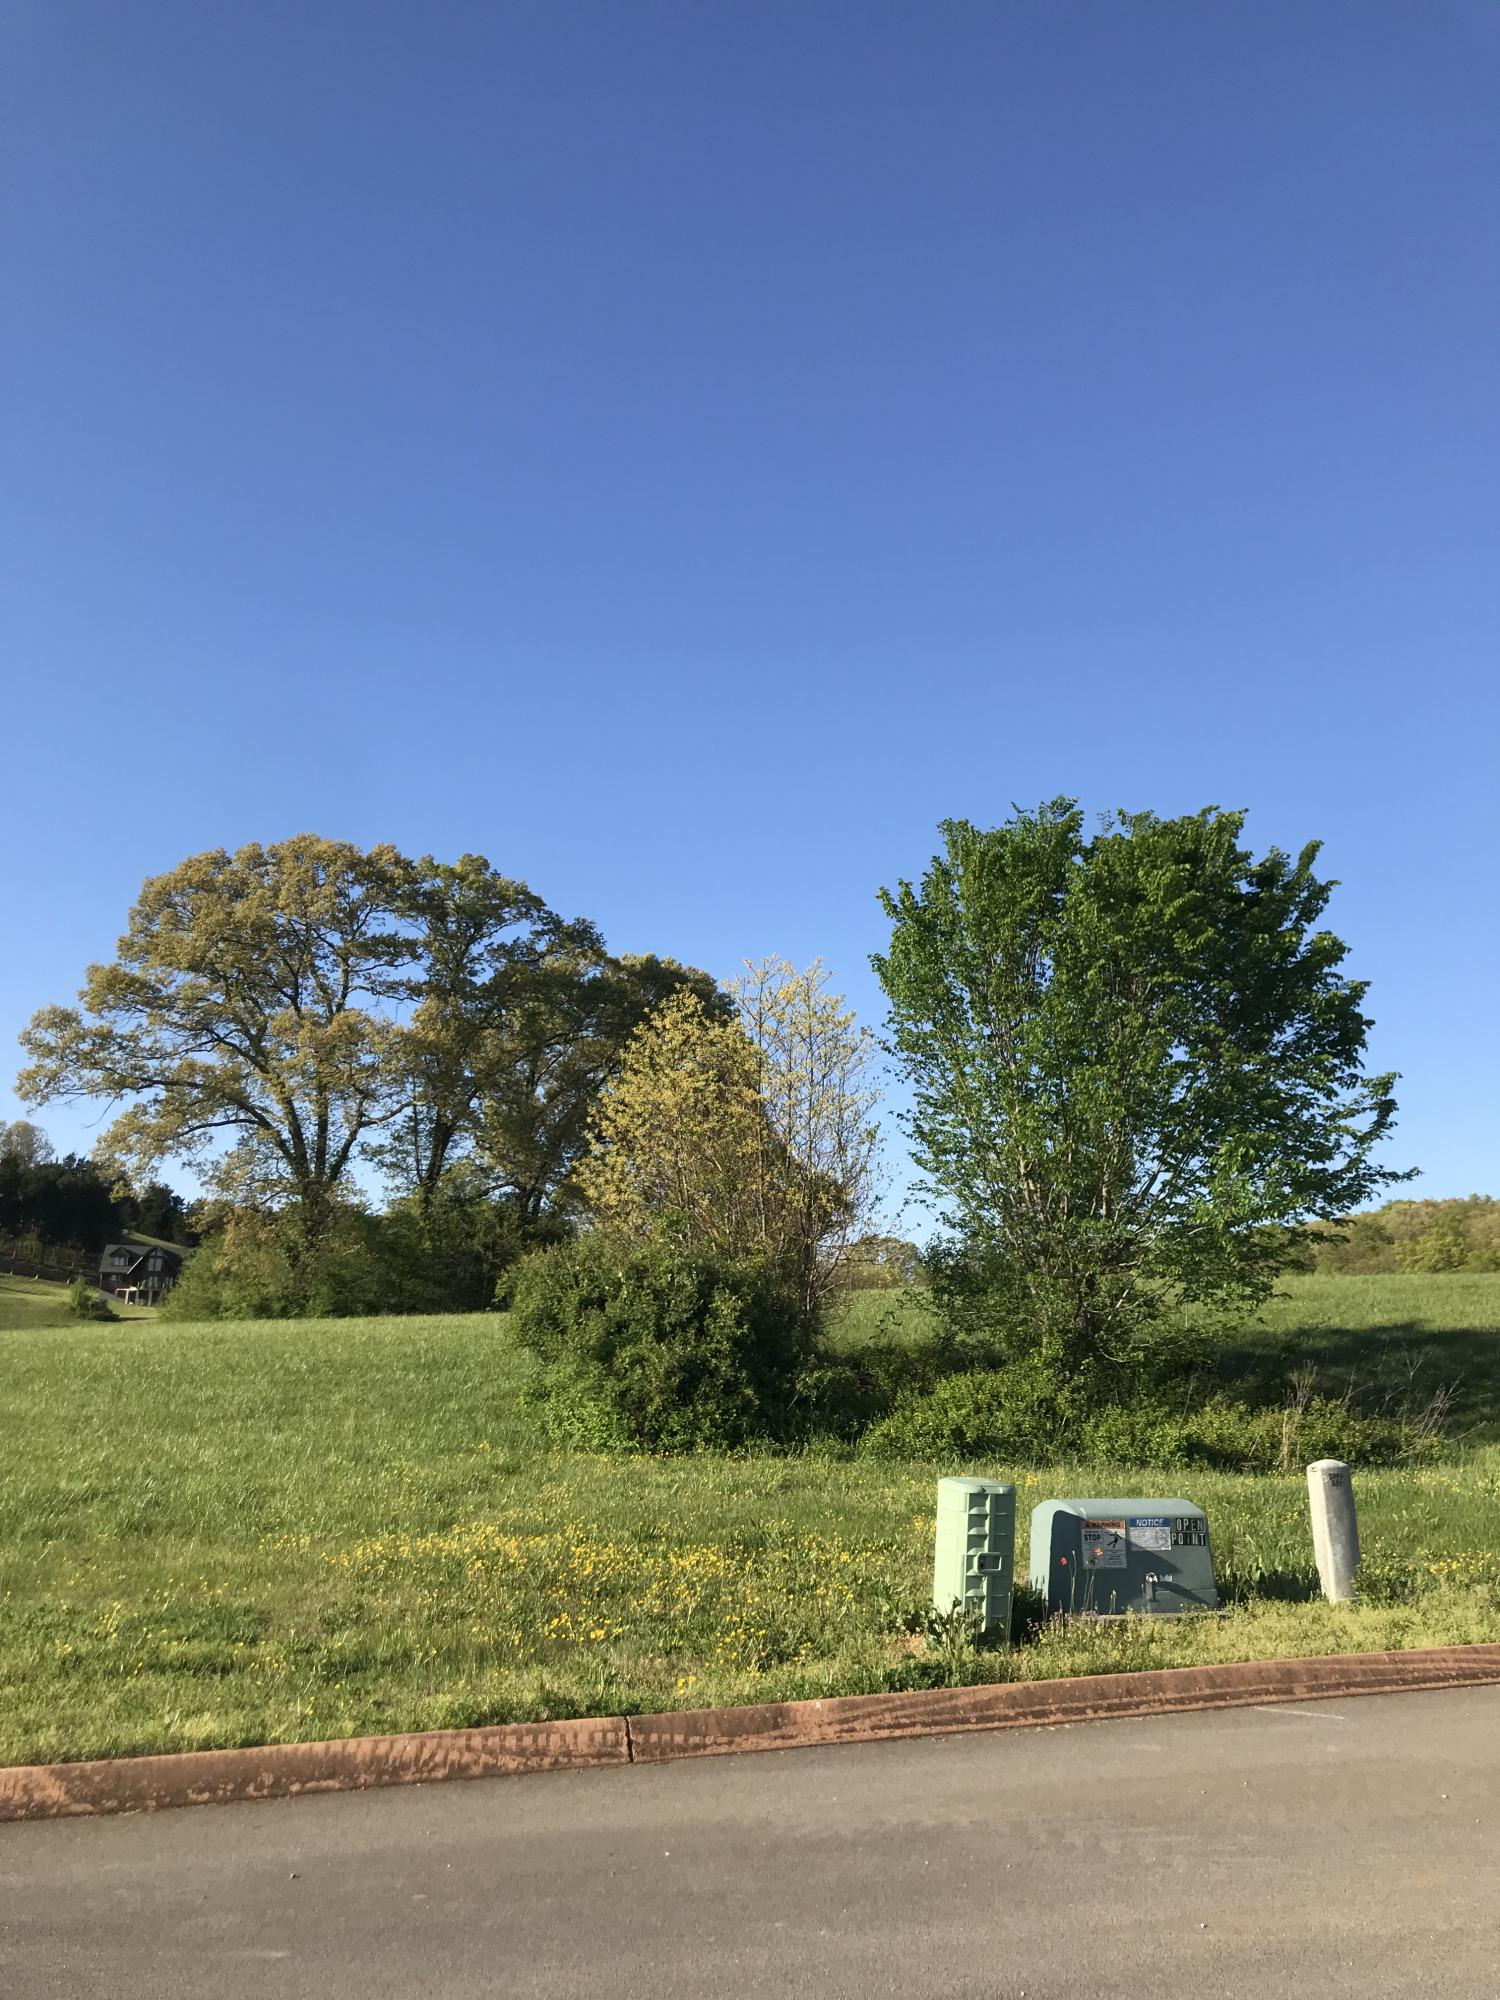 Lot 87 Shiloh Springs, Rutledge, Tennessee 37861, ,Lots & Acreage,For Sale,Shiloh Springs,1051100